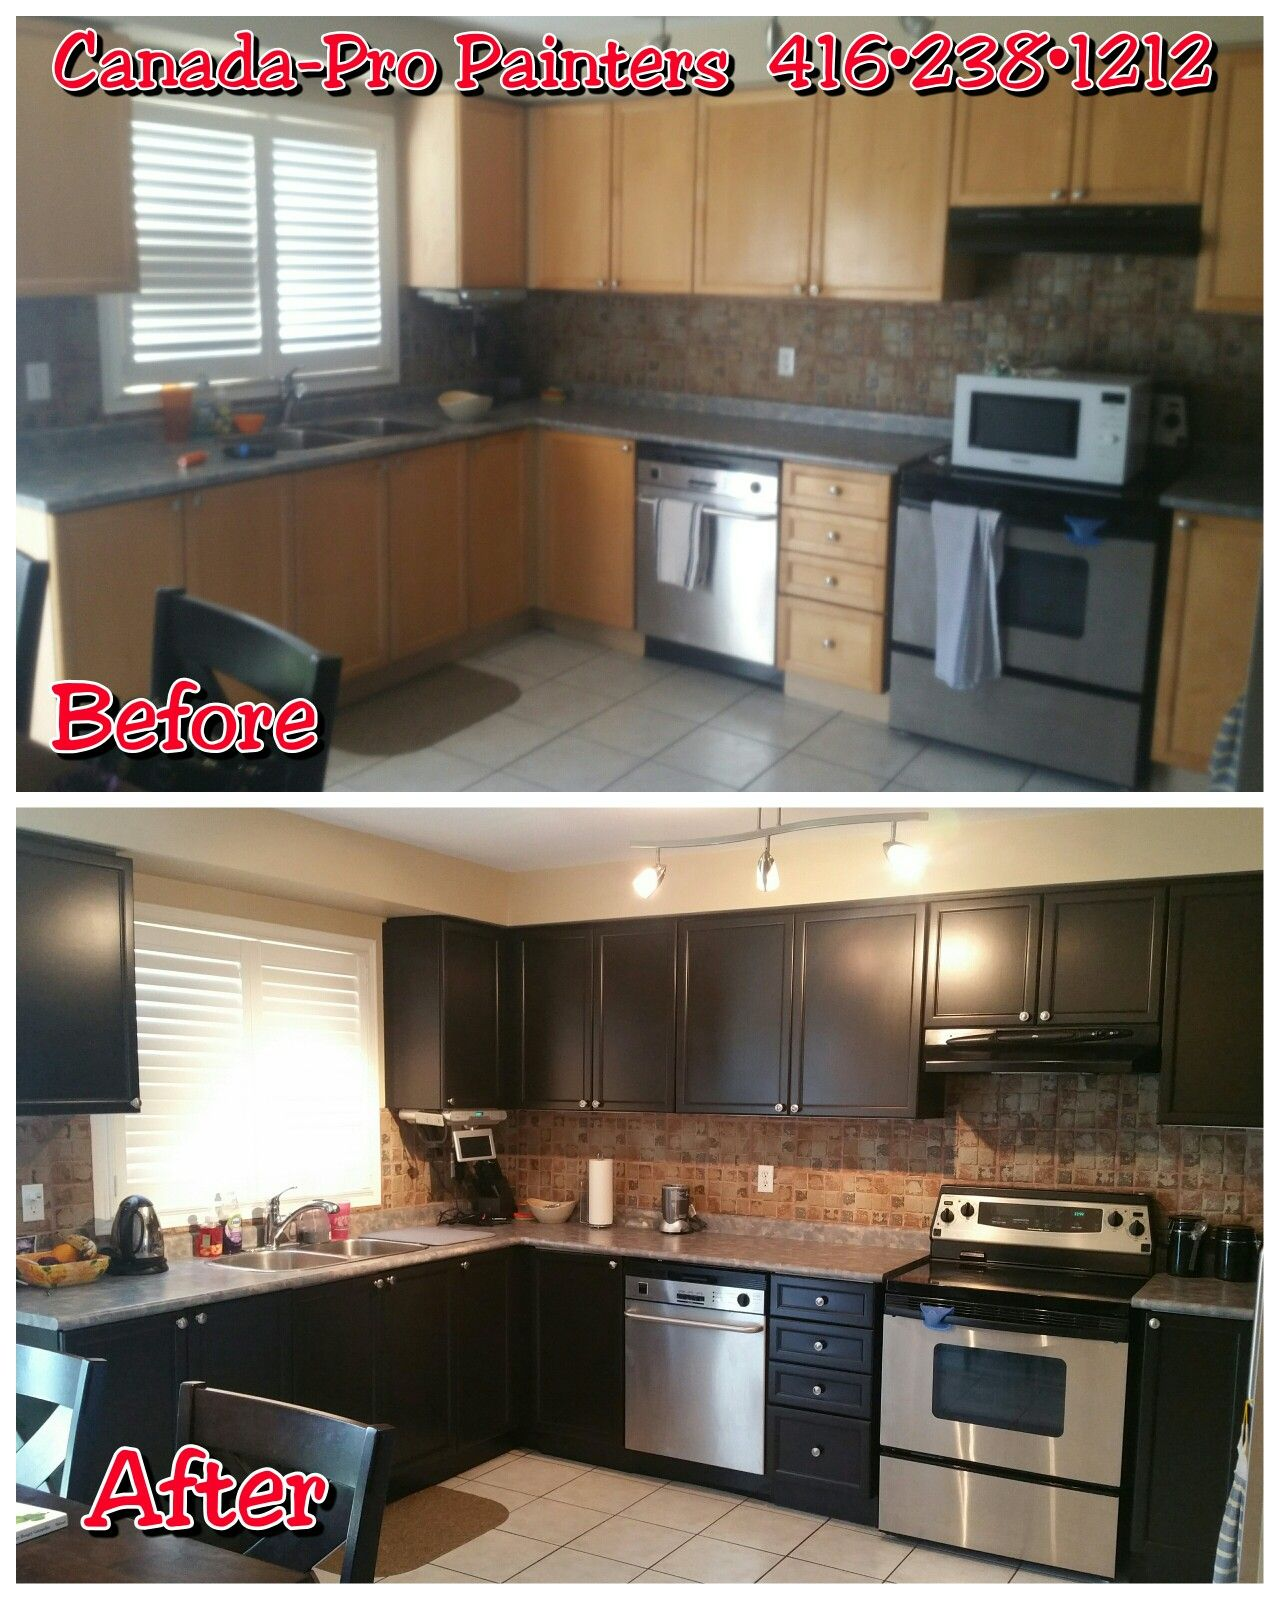 Outdated Kitchen Updated By Spraying With Dark Espresso Lacquer In Satin Finish Refinishing Cabinets Updated Kitchen Interior